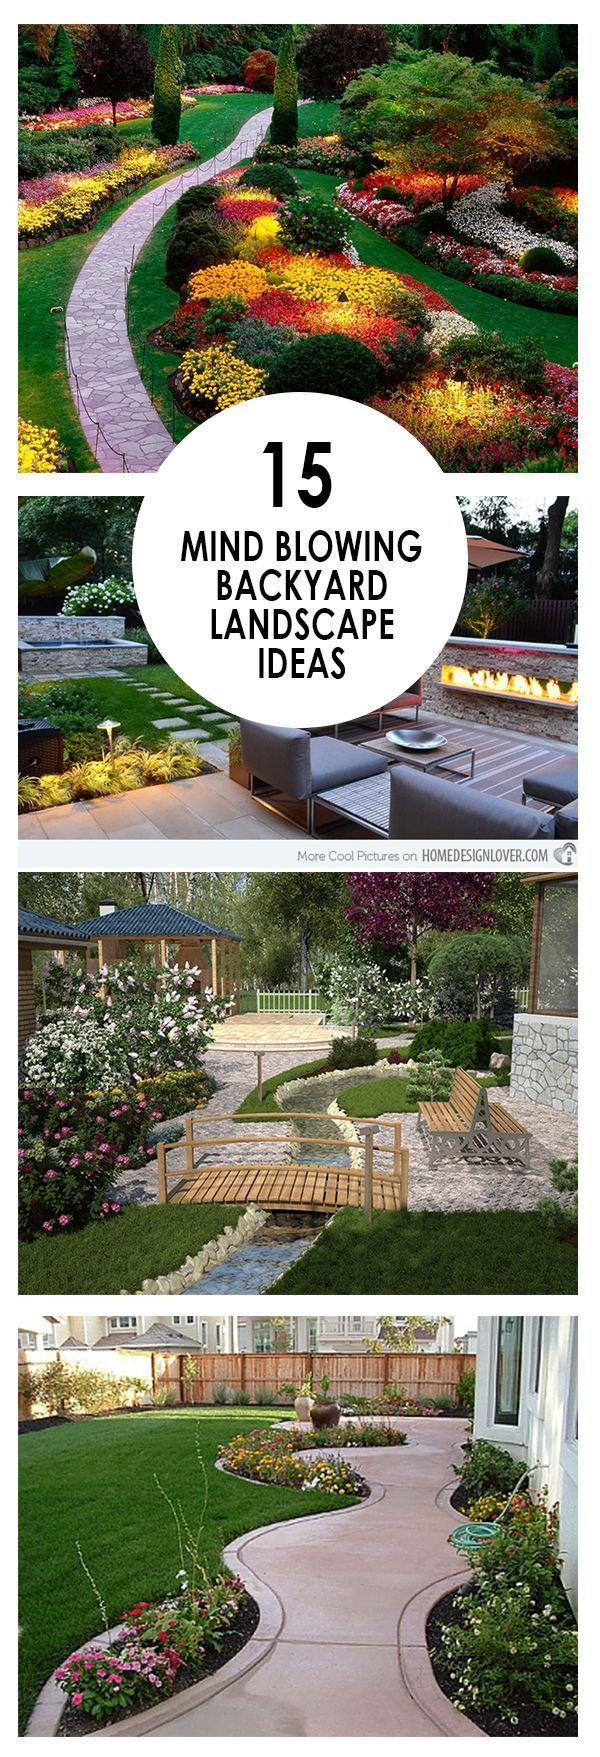 Outdoor living ideas by quiet earth landscapes - 15 Mind Blowing Backyard Landscape Ideas Page 10 Of 17